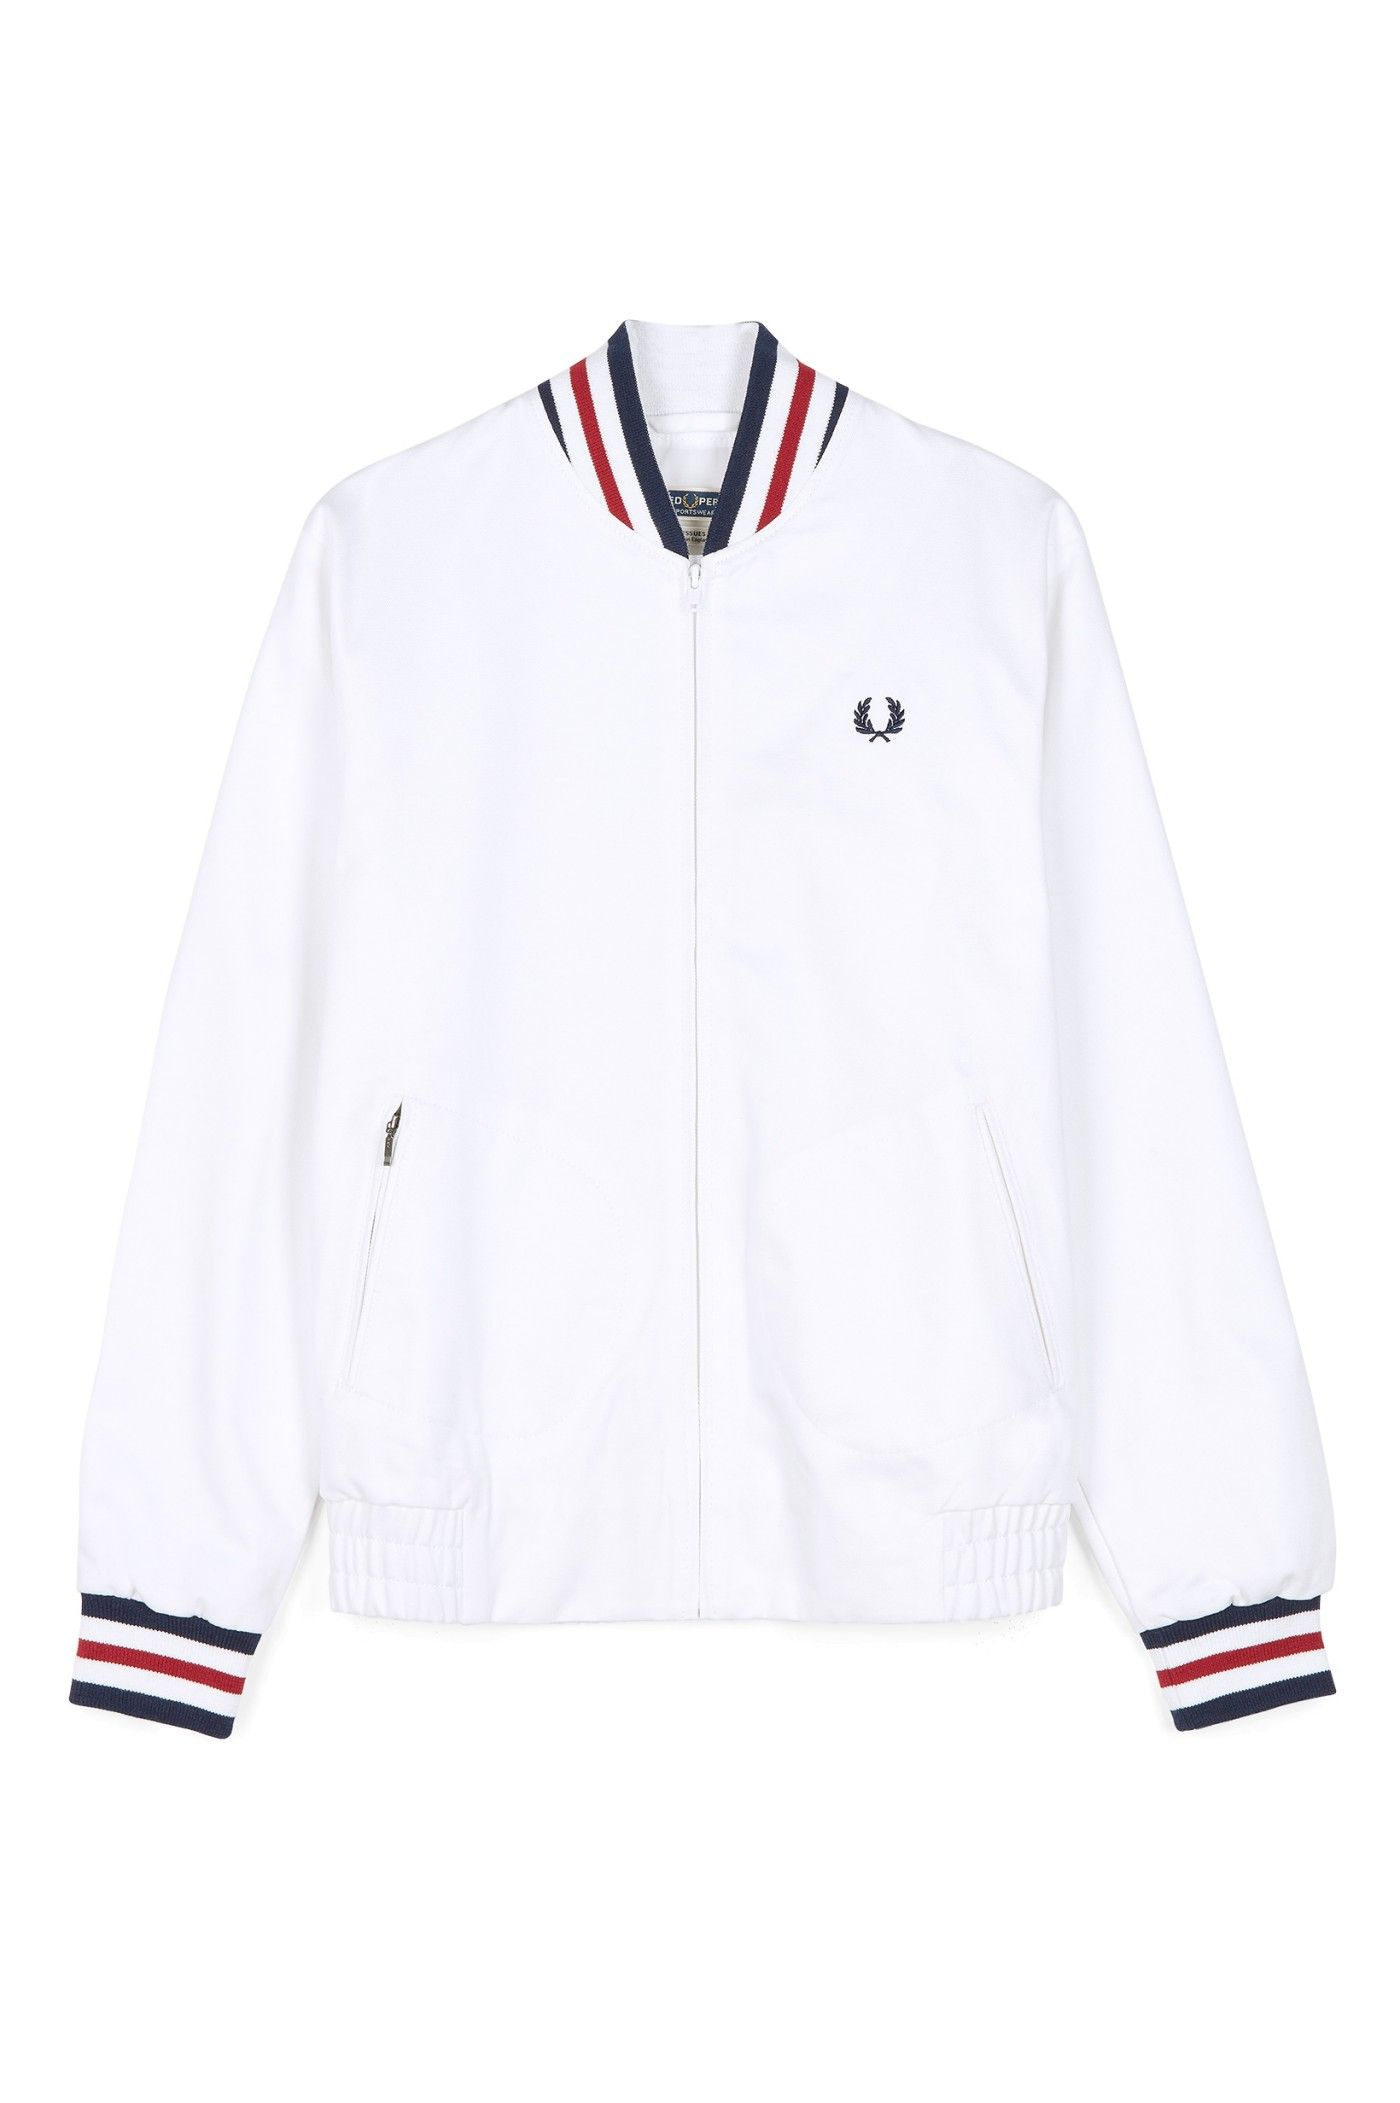 3c727232 Fred Perry - Reissues Made in England Original Tennis Bomber White ...